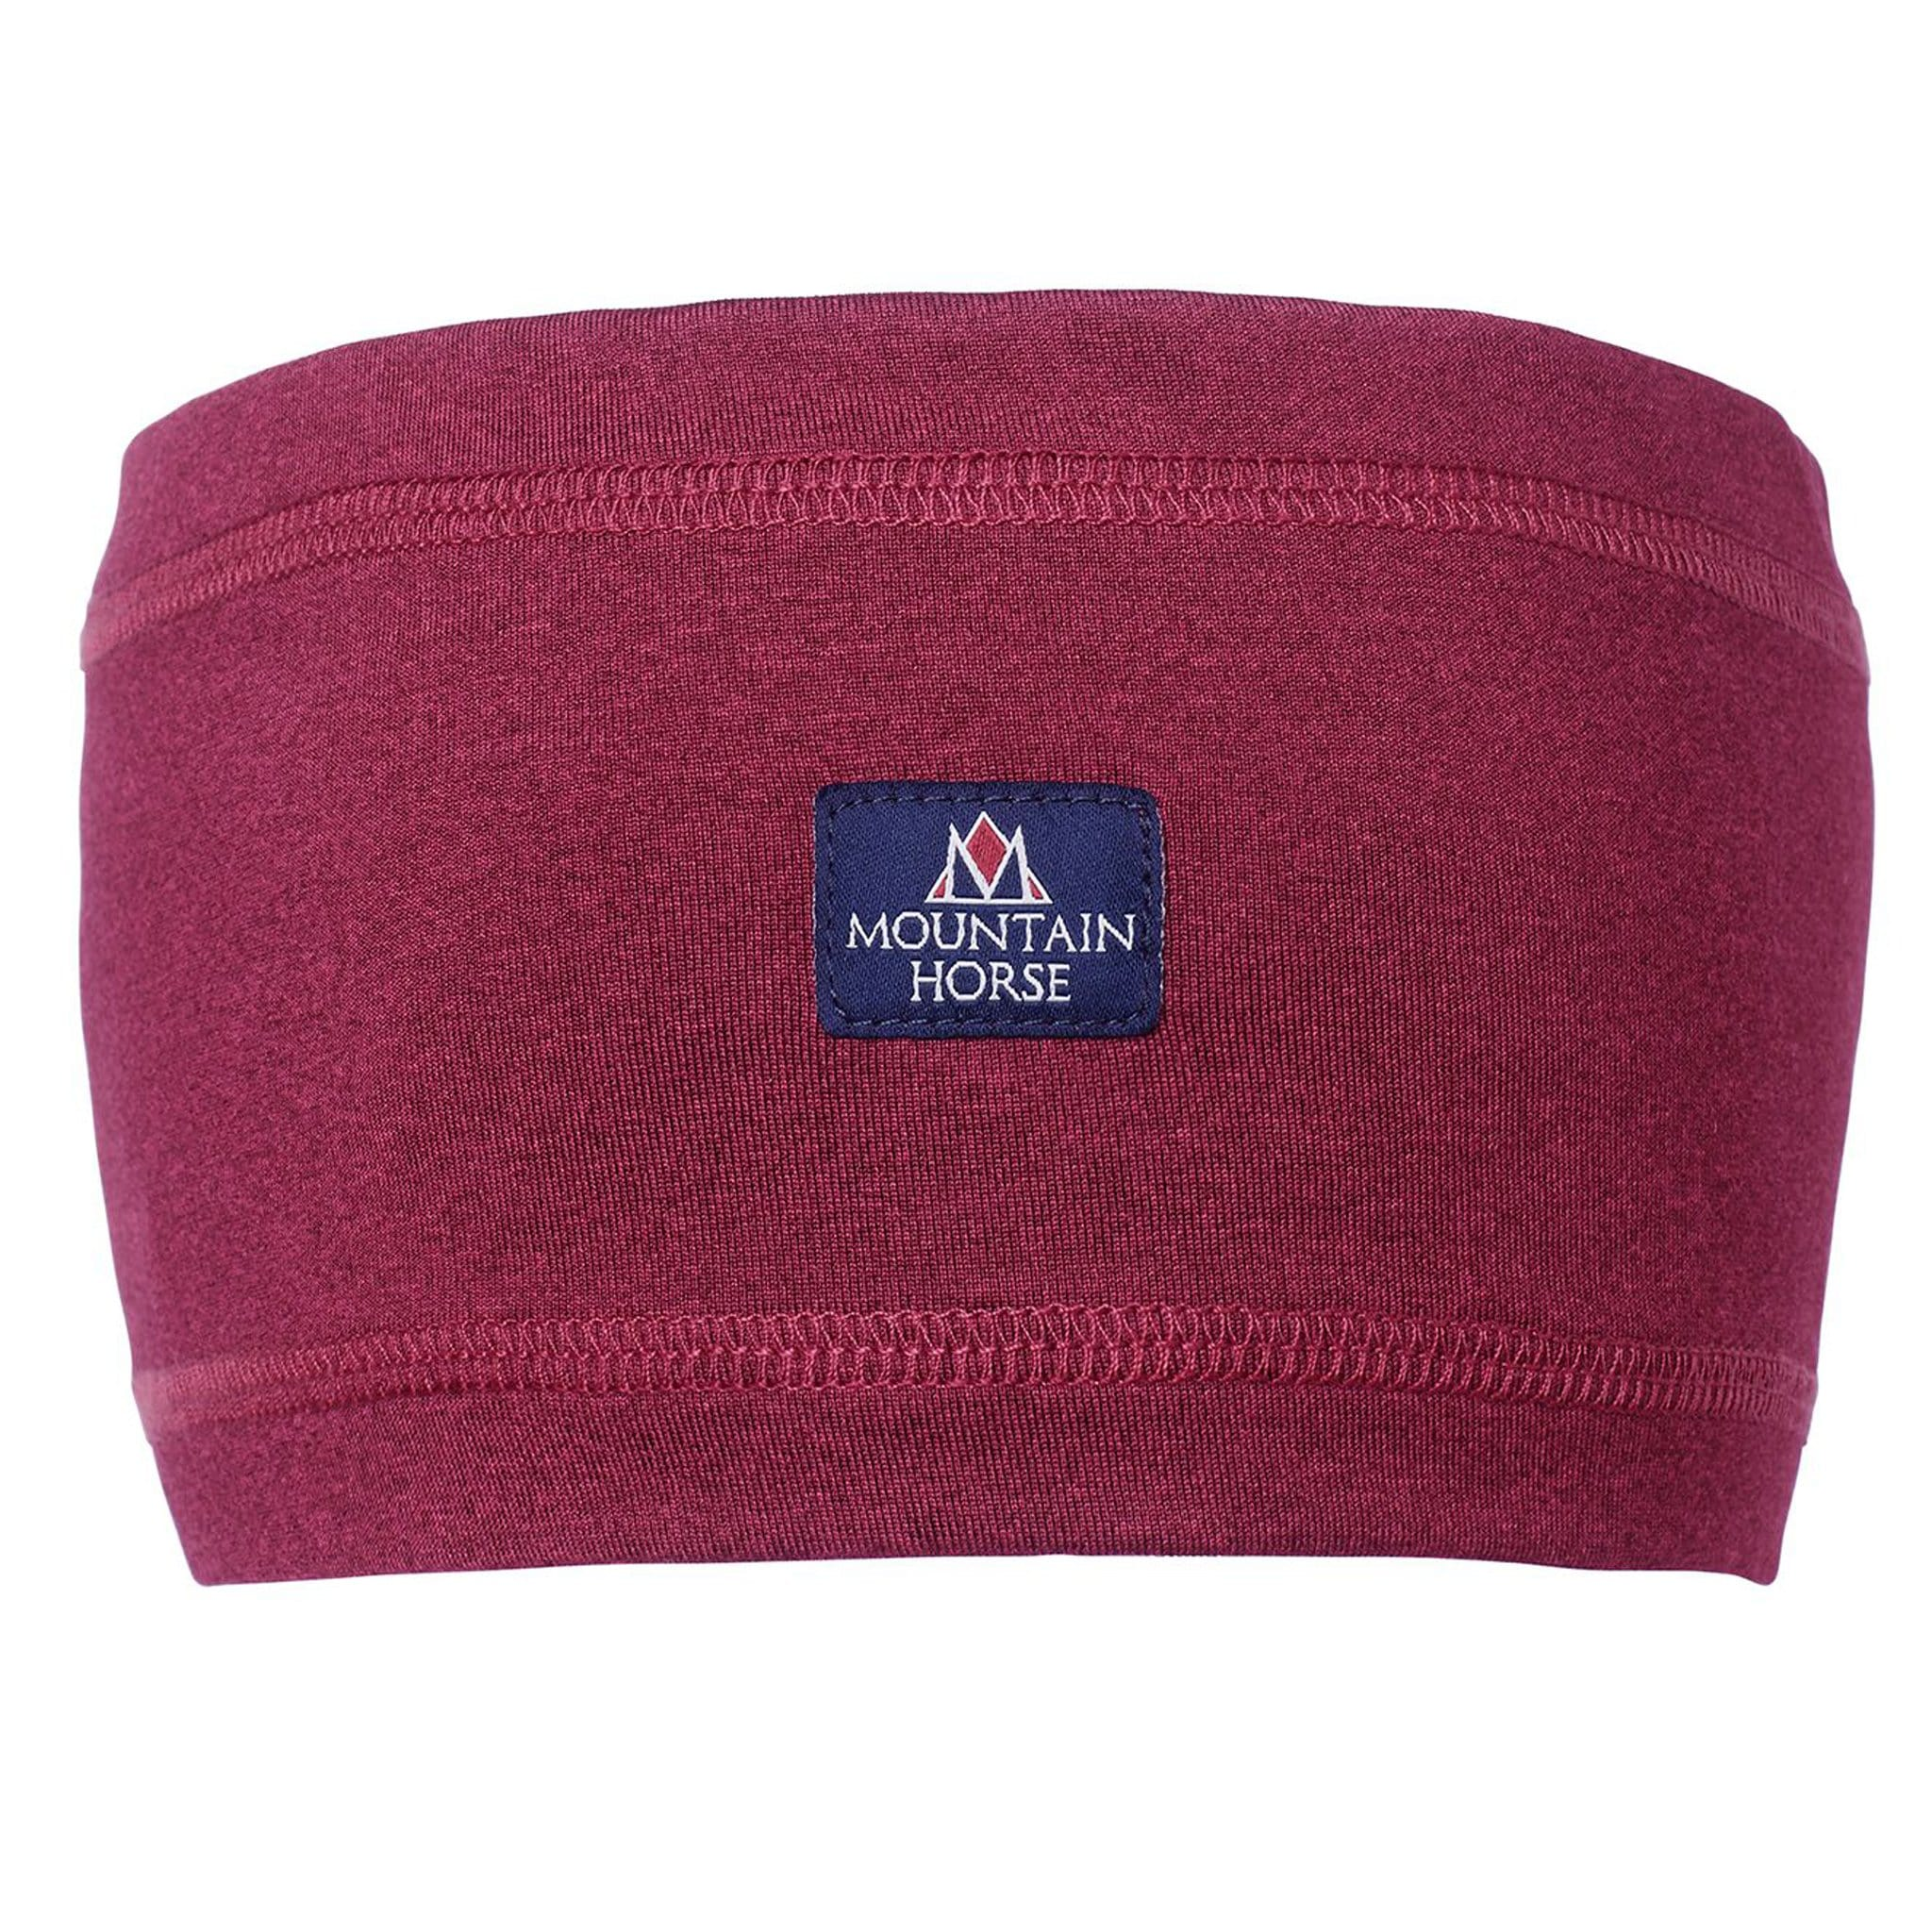 Mountain Horse Ayla Headband in Burgundy 08184